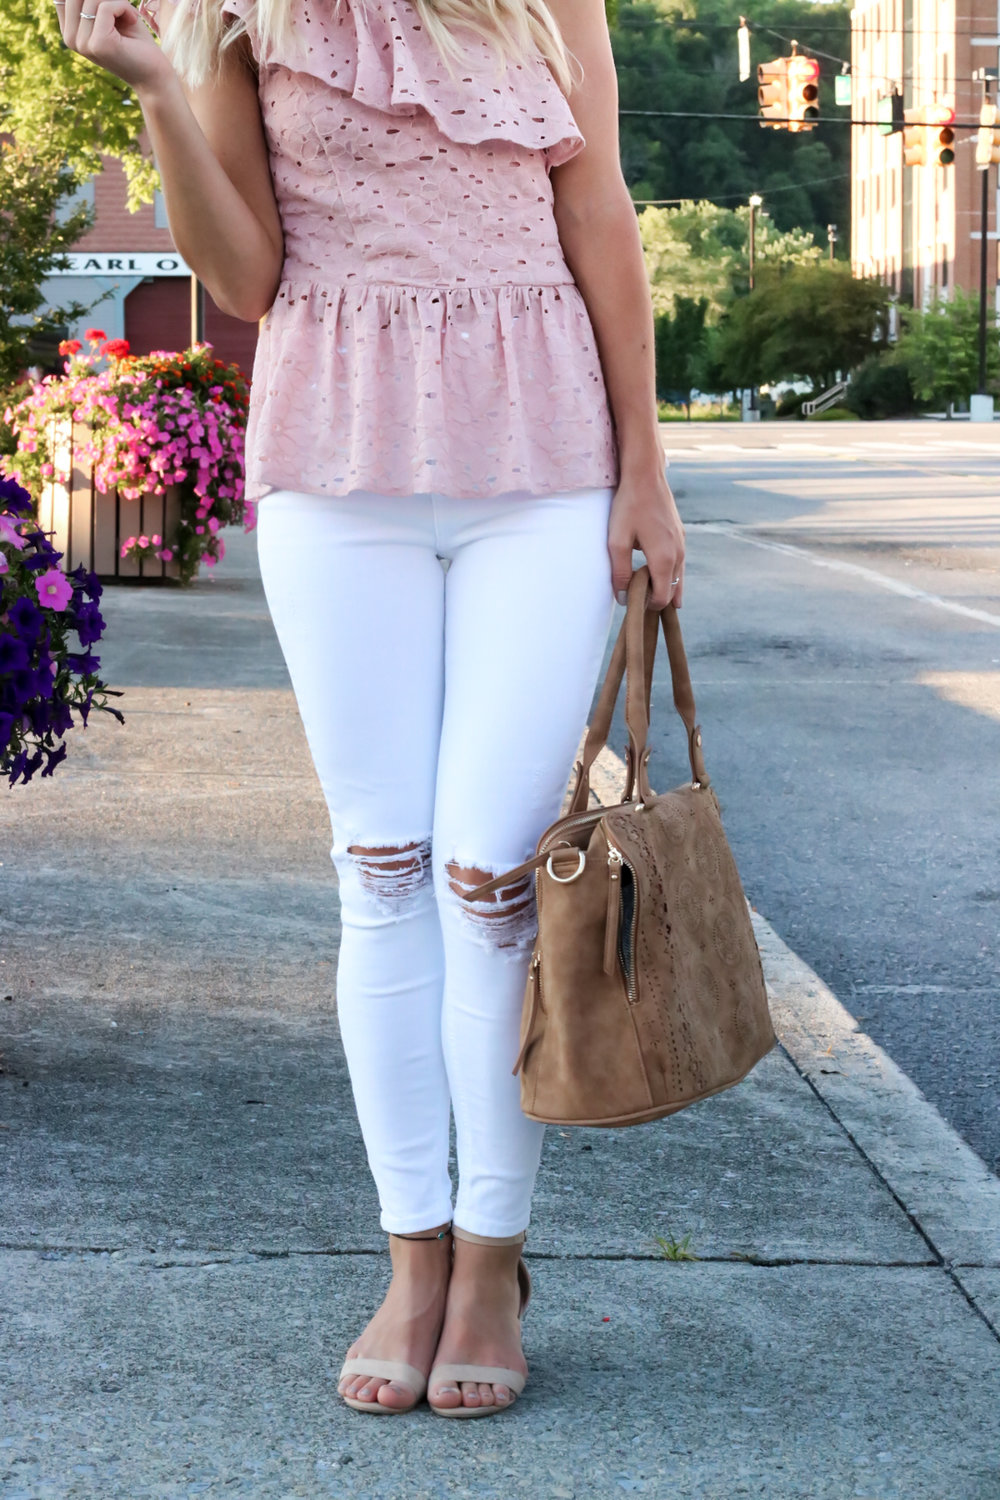 Blush Pink Eylet One Shoulder Top-11.jpg